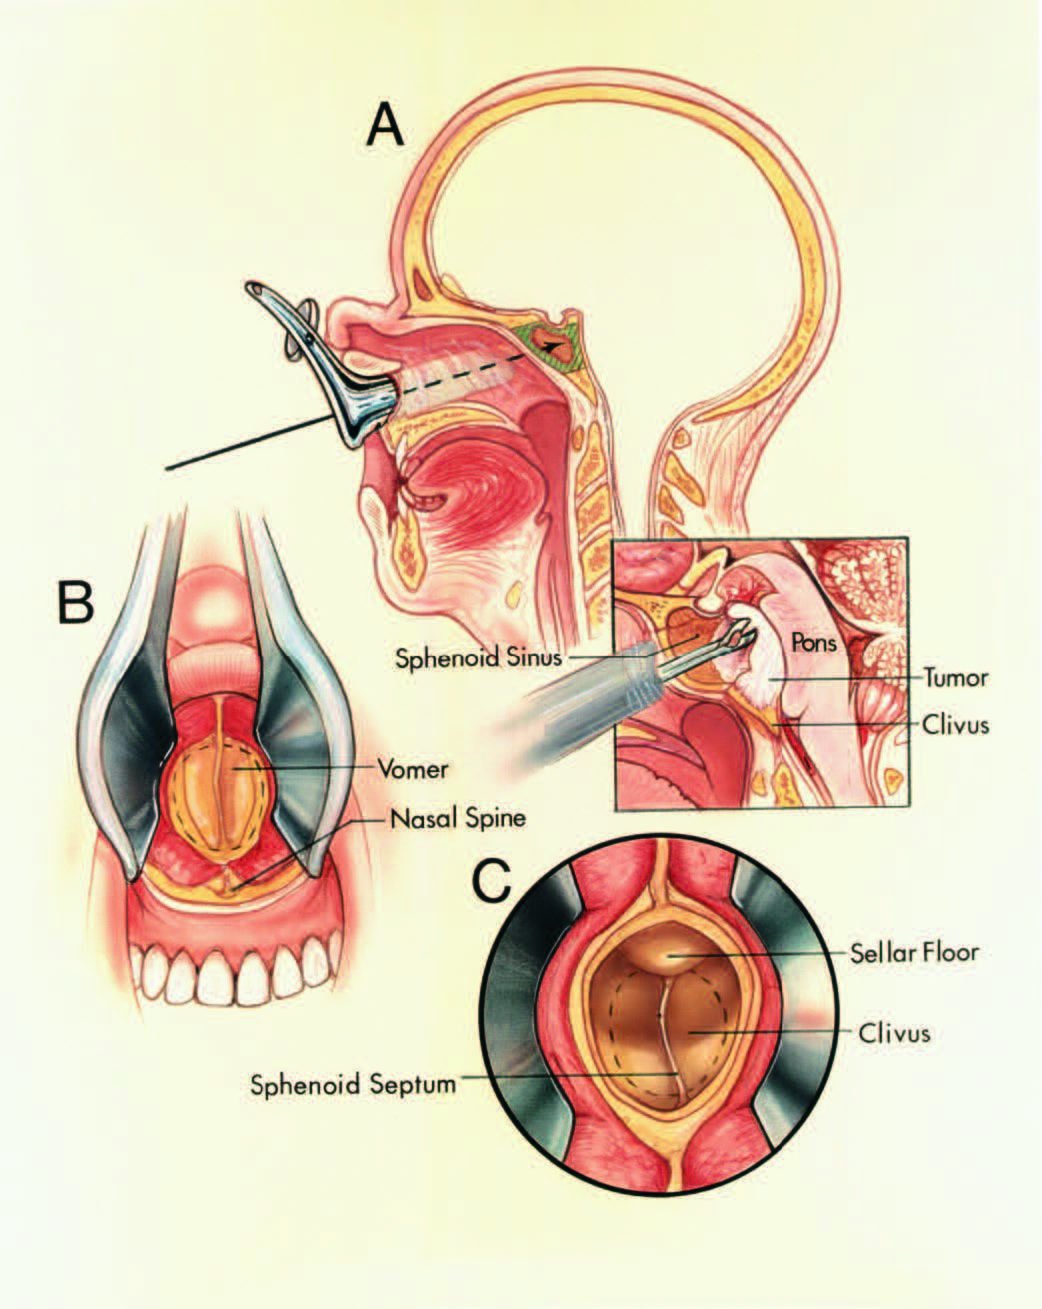 FIGURE 6.17. Transsphenoidal approach. A, Upper left, this approach, directed beneath the upper lip, along the nasal septum, and through the sphenoid sinus, may be used to expose the upper third of the clivus. The resectable area (oblique lines) includes the floor and anterior wall of the sella, the vomer, and the upper third of the clivus. This approach is suitable for biopsying some tumors that extend upward from the foramen magnum. Lower right, a cup forceps biopsies a clival tumor. B, view through nasal speculum. The anterior nasal spine is preserved and the anterior part of the septal cartilage remains attached to the septal mucosa on one side. The nasal speculum is inserted between the left side of the nasal septum and its mucosa. The nasal septum and the mucosa on the right side of the septum are pushed to the right by the speculum, and the mucosa on the left side of the septum is pushed to the left. The keel on the vomer is exposed. C, magnified view. The vomer has been removed to open the sphenoid sinus. The sellar floor is above the midline septum. In approaching the clivus, the floor of the sella is removed, and the opening in the bone is extended downward on the clivus (interrupted lines) to the inferior margin of the sphenoid sinus.